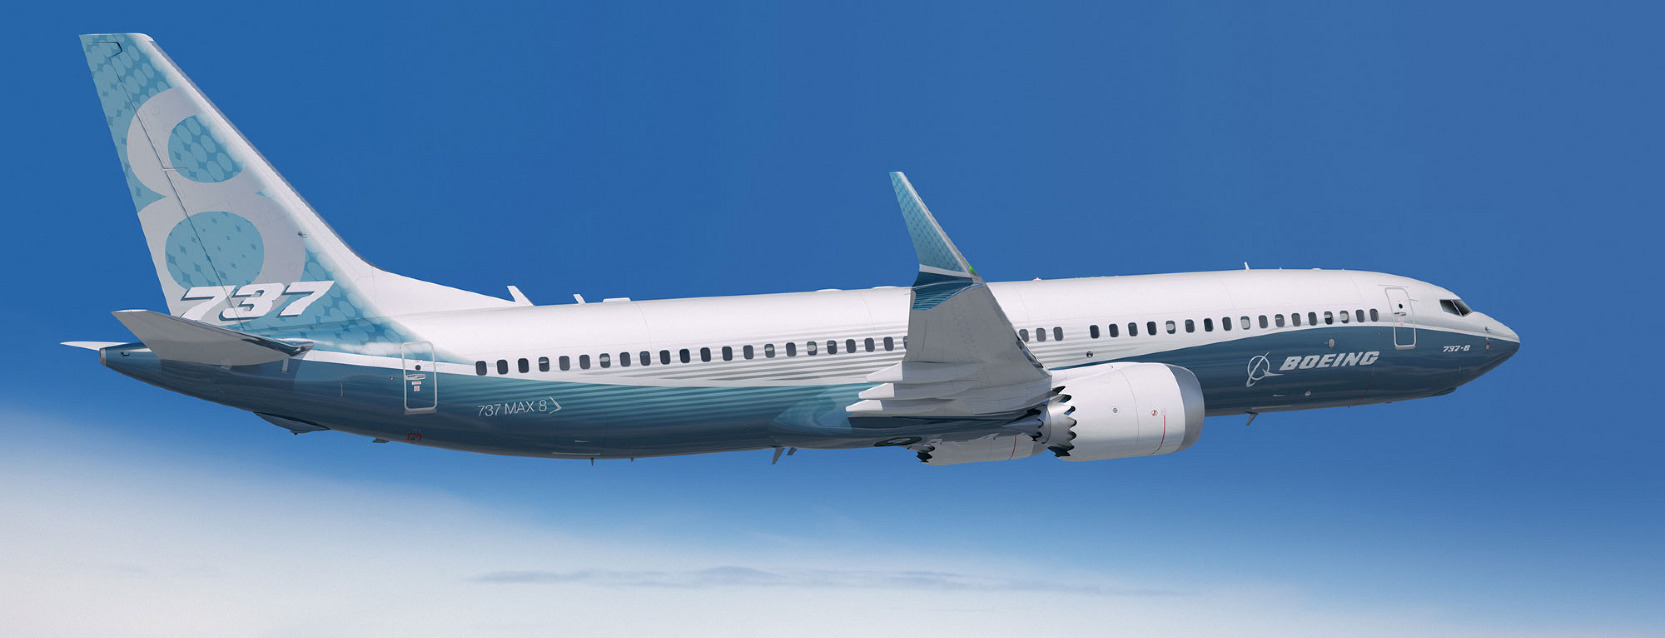 737 MAX to roll out to Boeing product strategy challenges